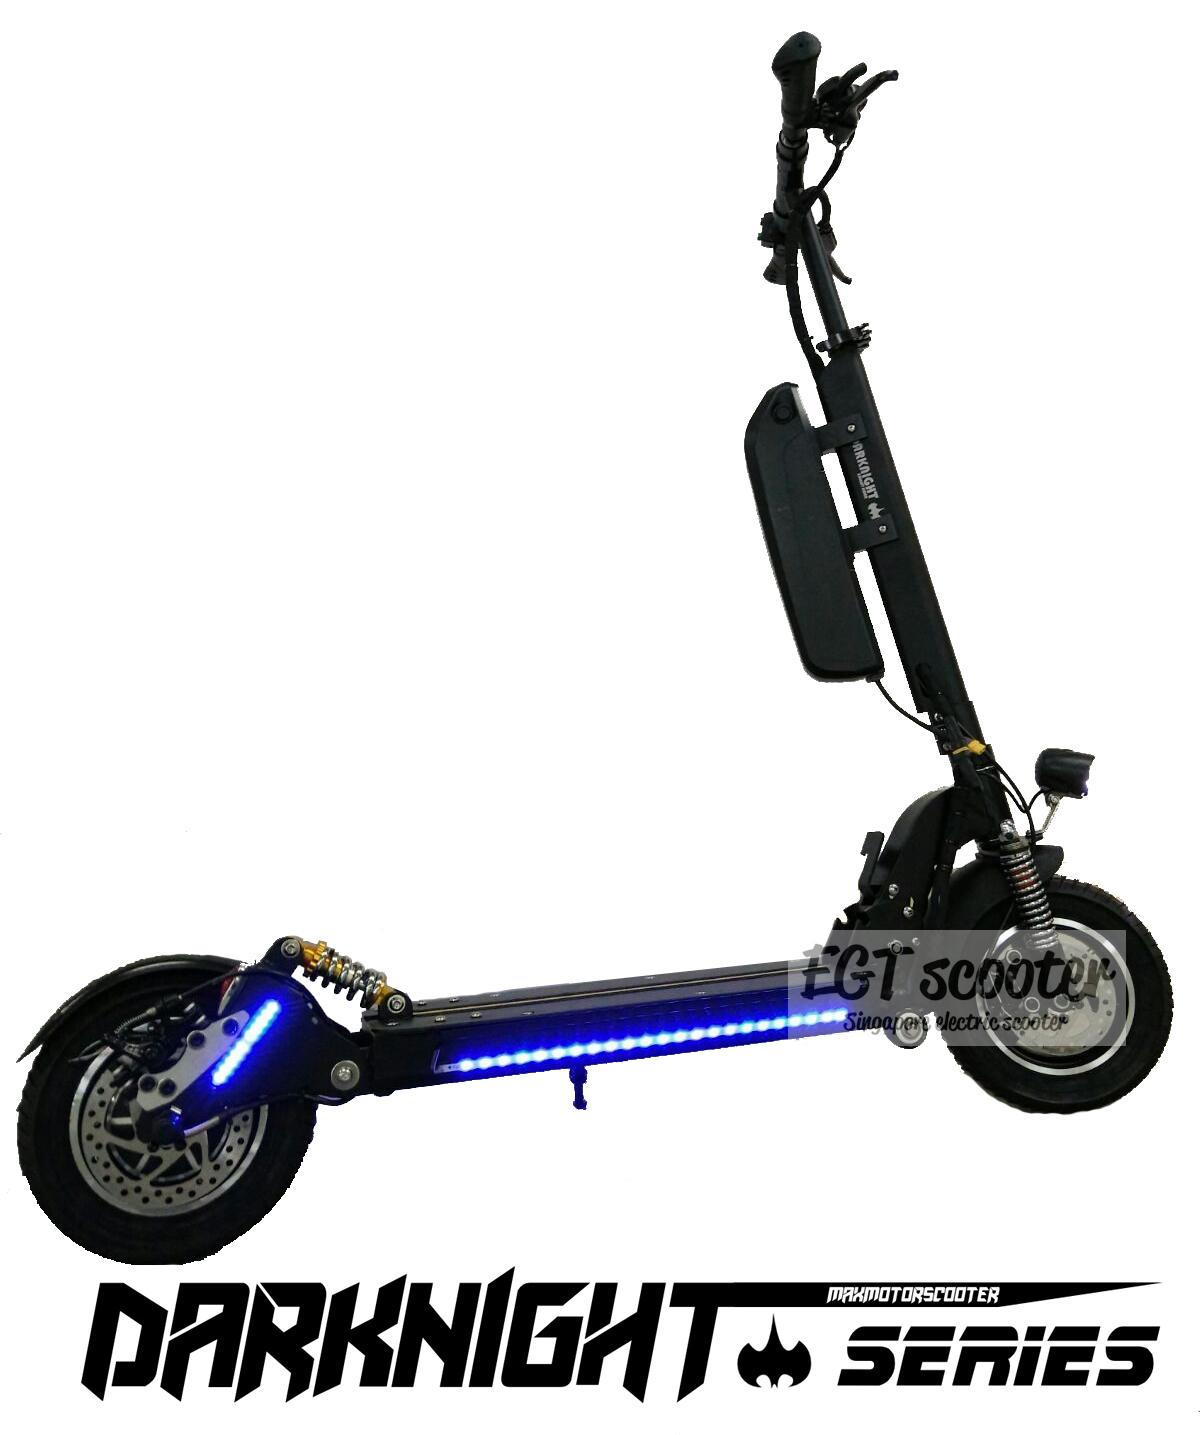 The best electric scooter our products Saint splendid